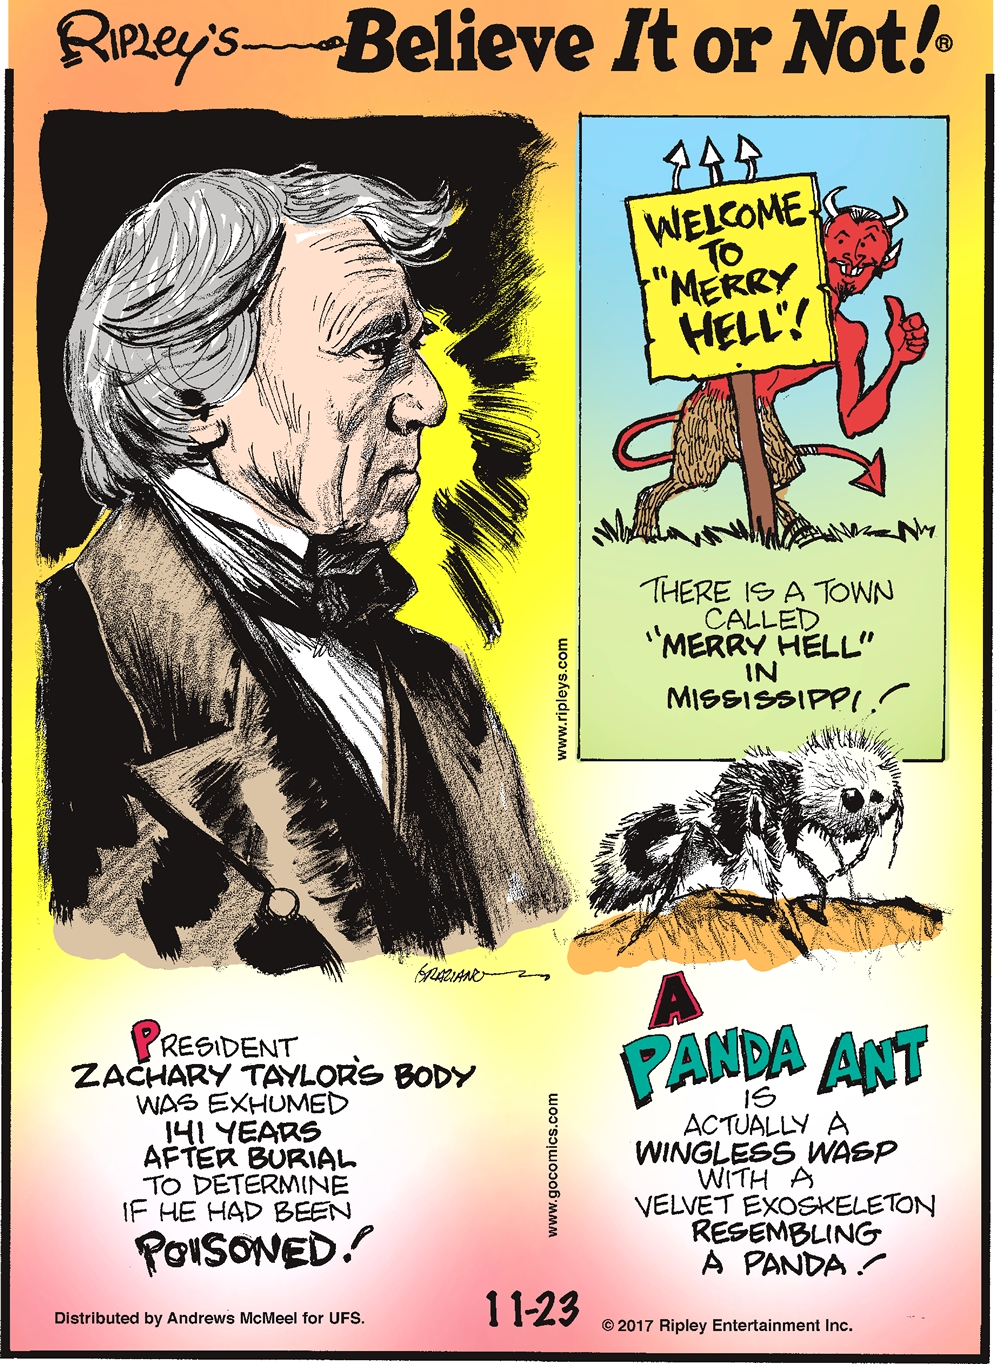 "There is a town called ""Merry Hell"" in Mississippi!-------------------- President Zachary Taylor's body was exhumed 141 years after burial to determine if he had been poisoned!-------------------- A panda ant is actually a wingless wasp with a velvet exoskeleton resembling a panda!"